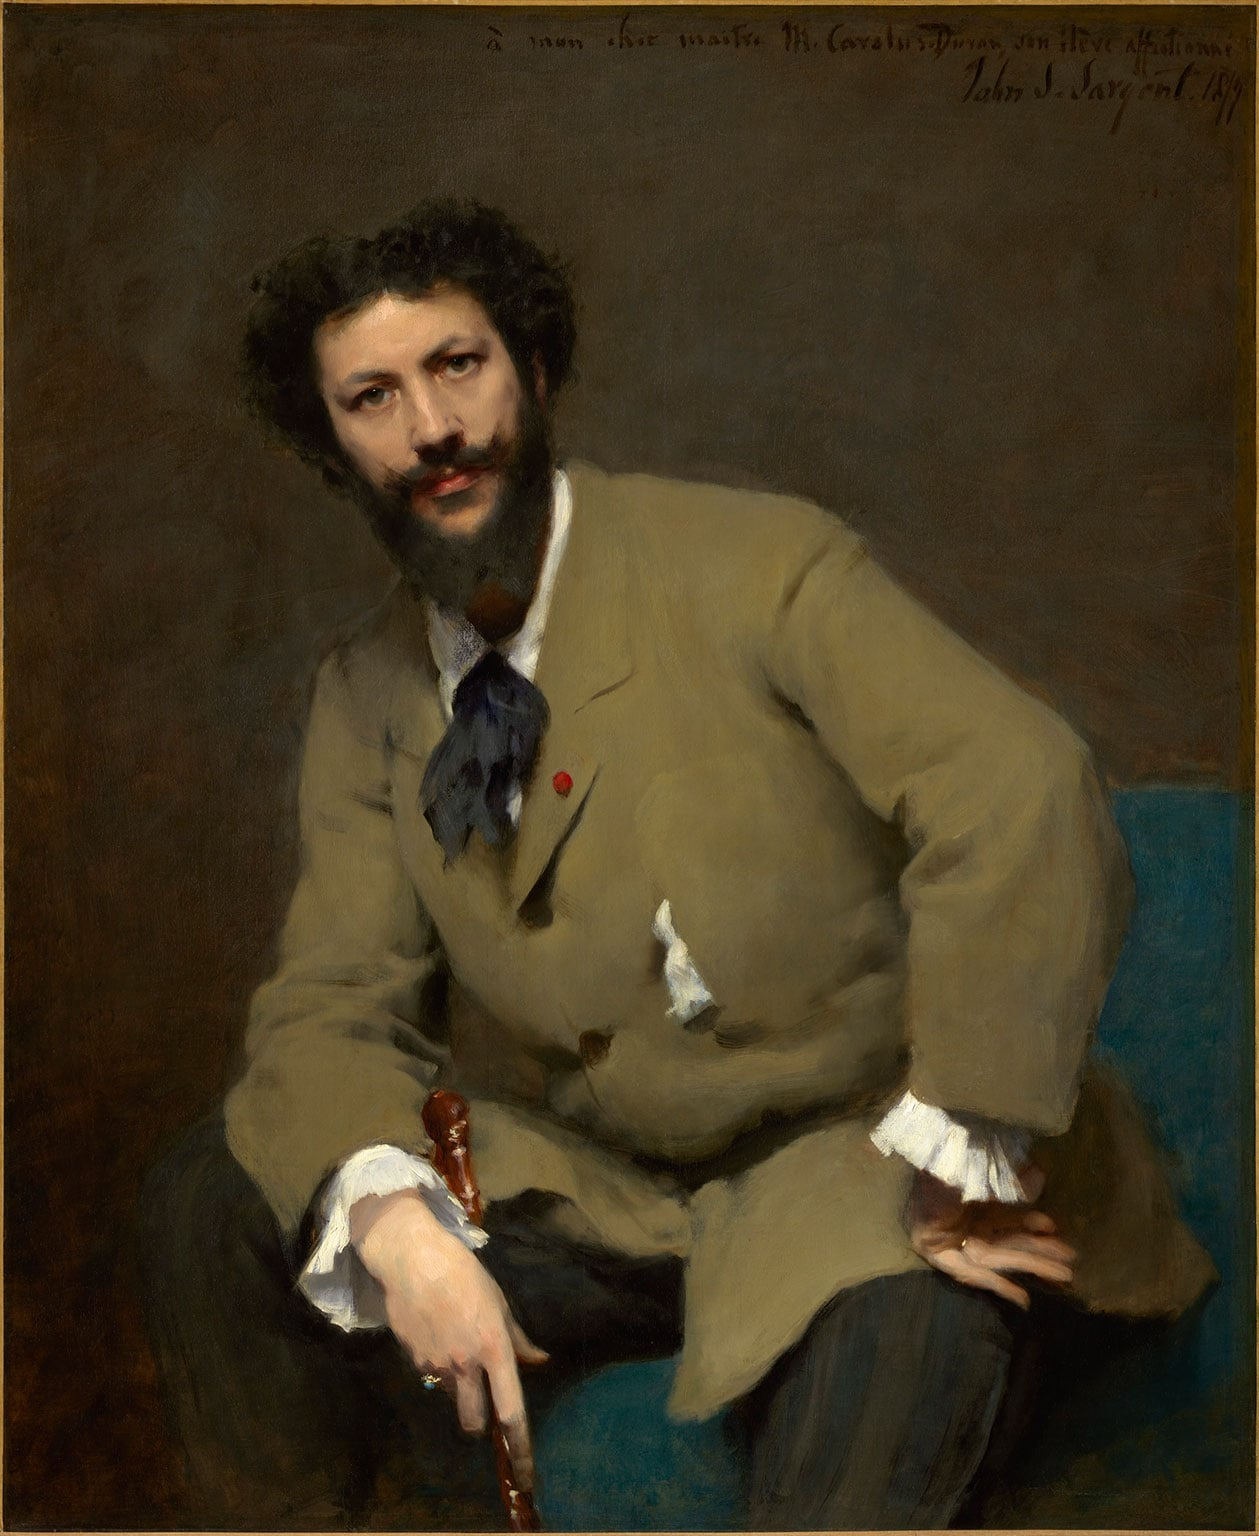 1. John Singer Sargent, Carolus-Duran, 1879 - © Sterling and Francine Clark Art Institute, Williamstown, Massachusetts, USA (photo by Michael Agee)